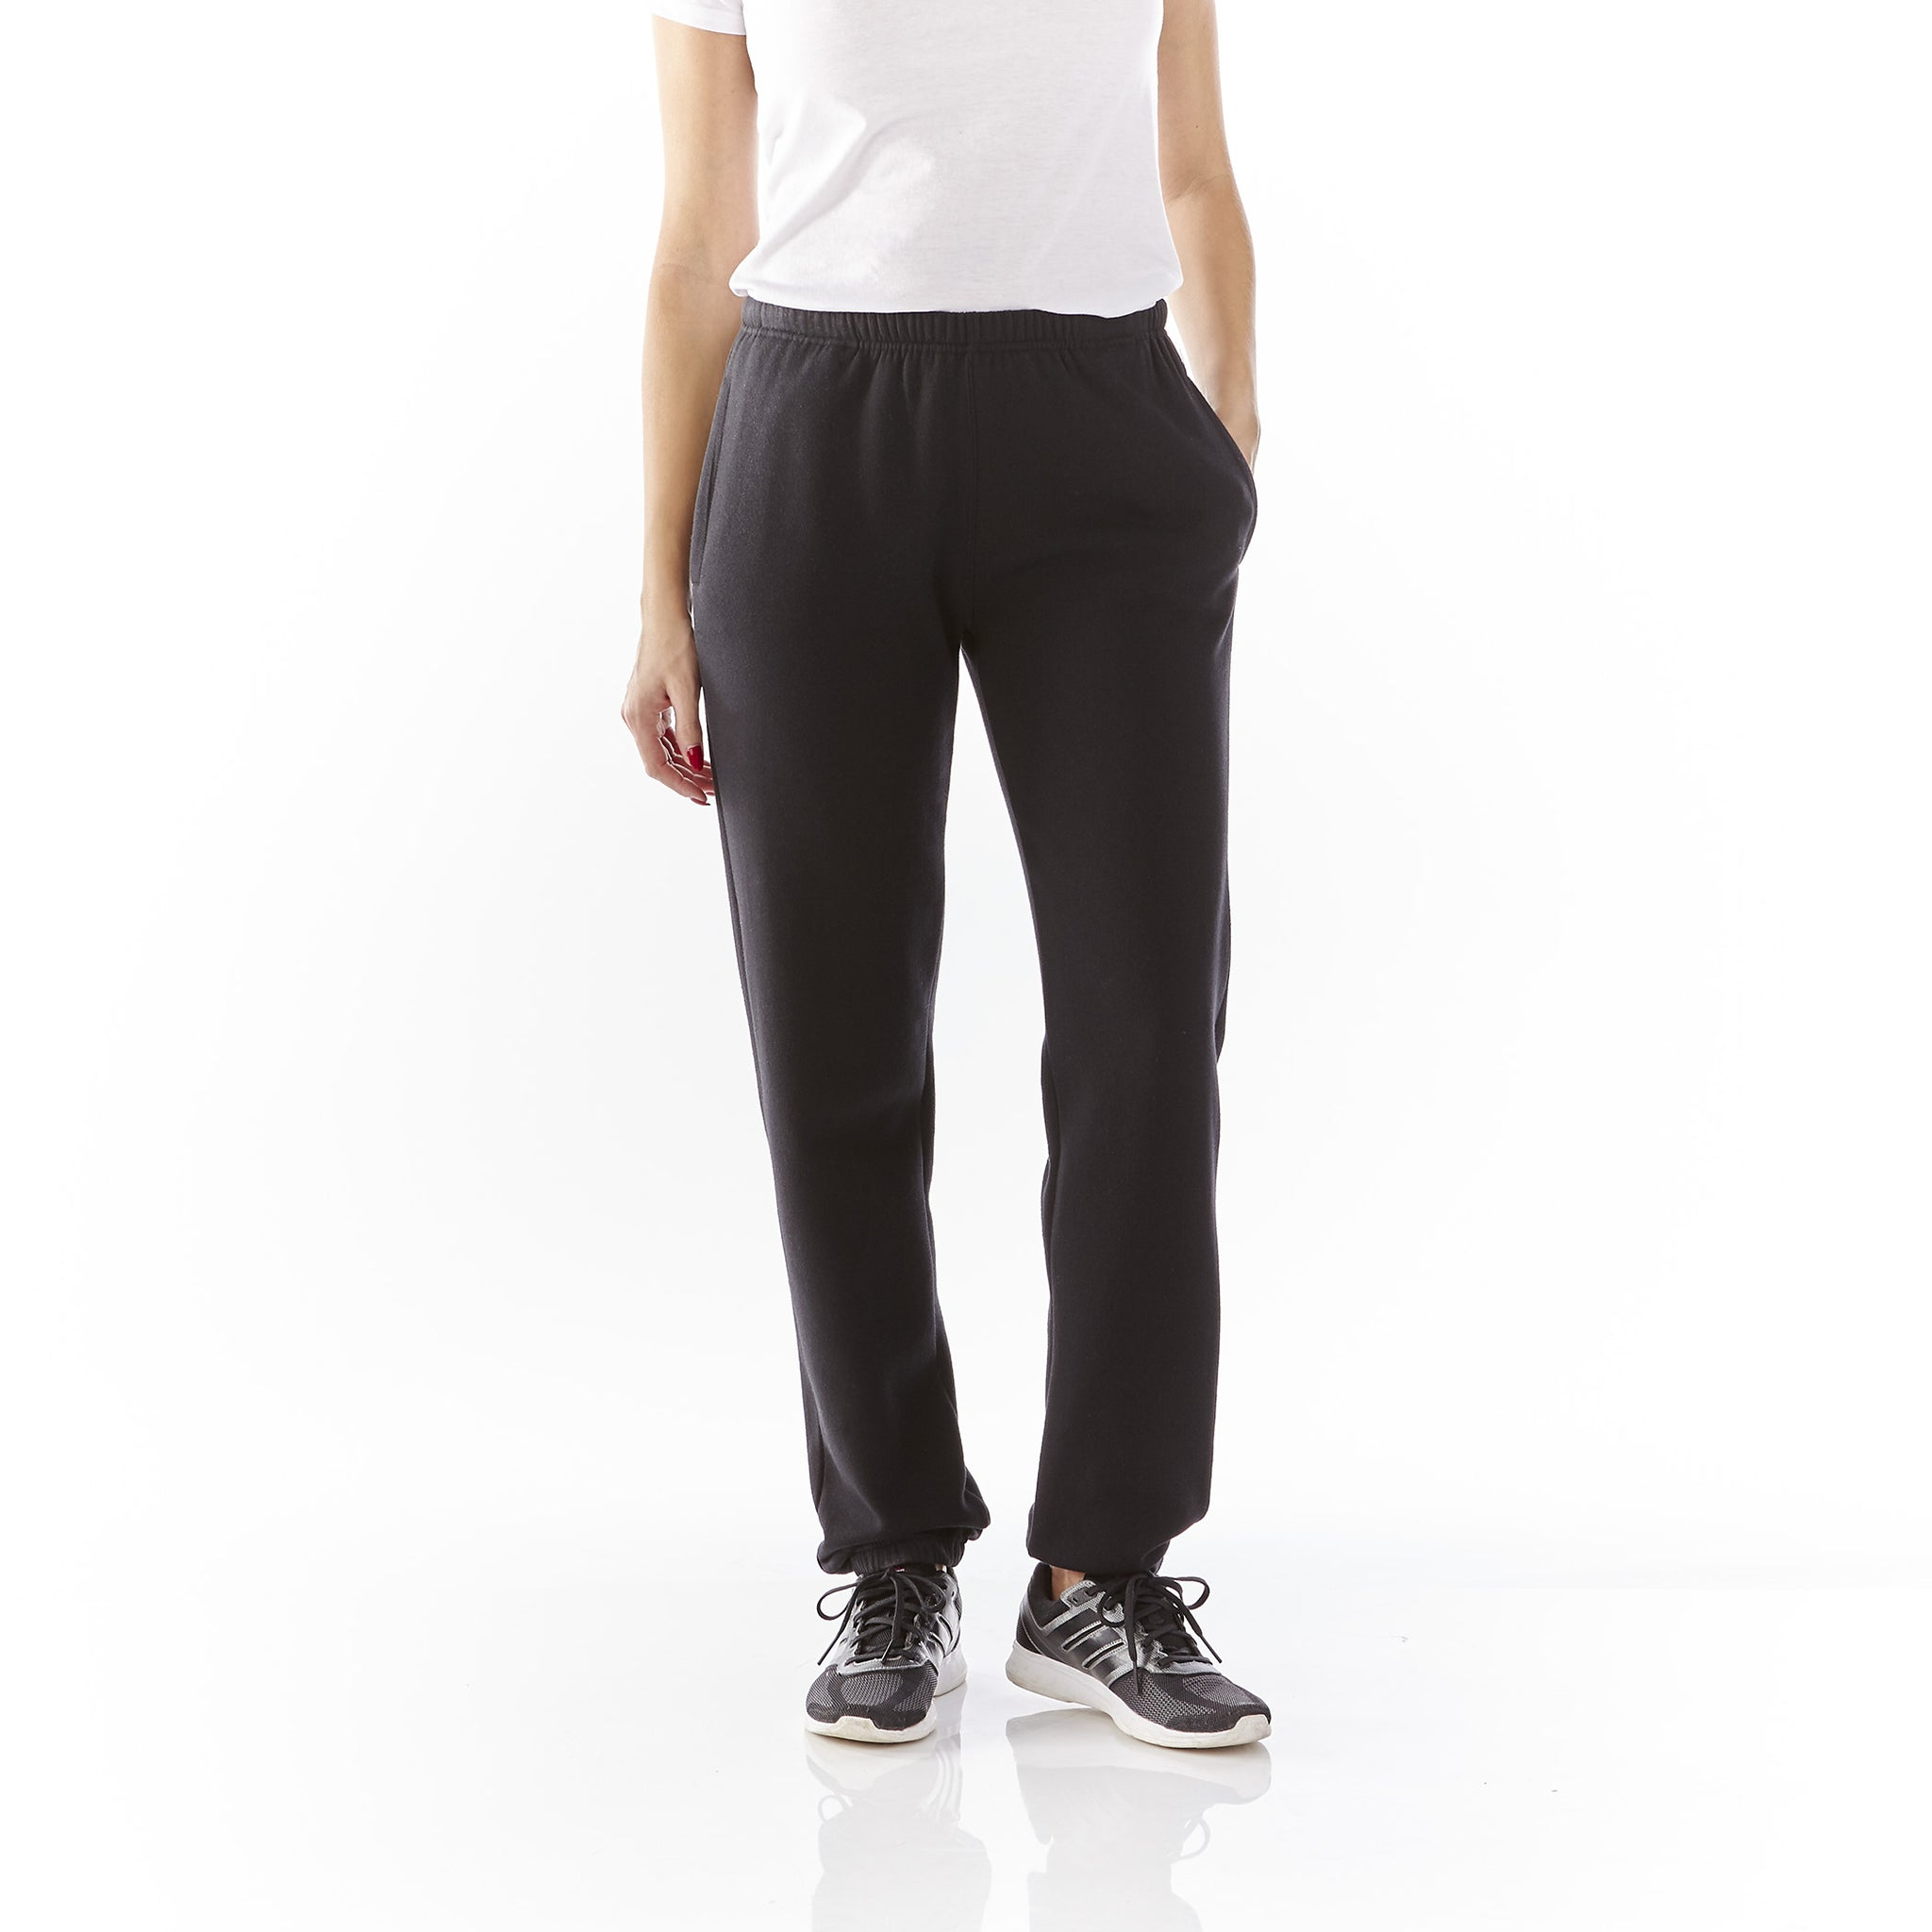 TRIMARK LADIES RUDALL FLEECE PANT